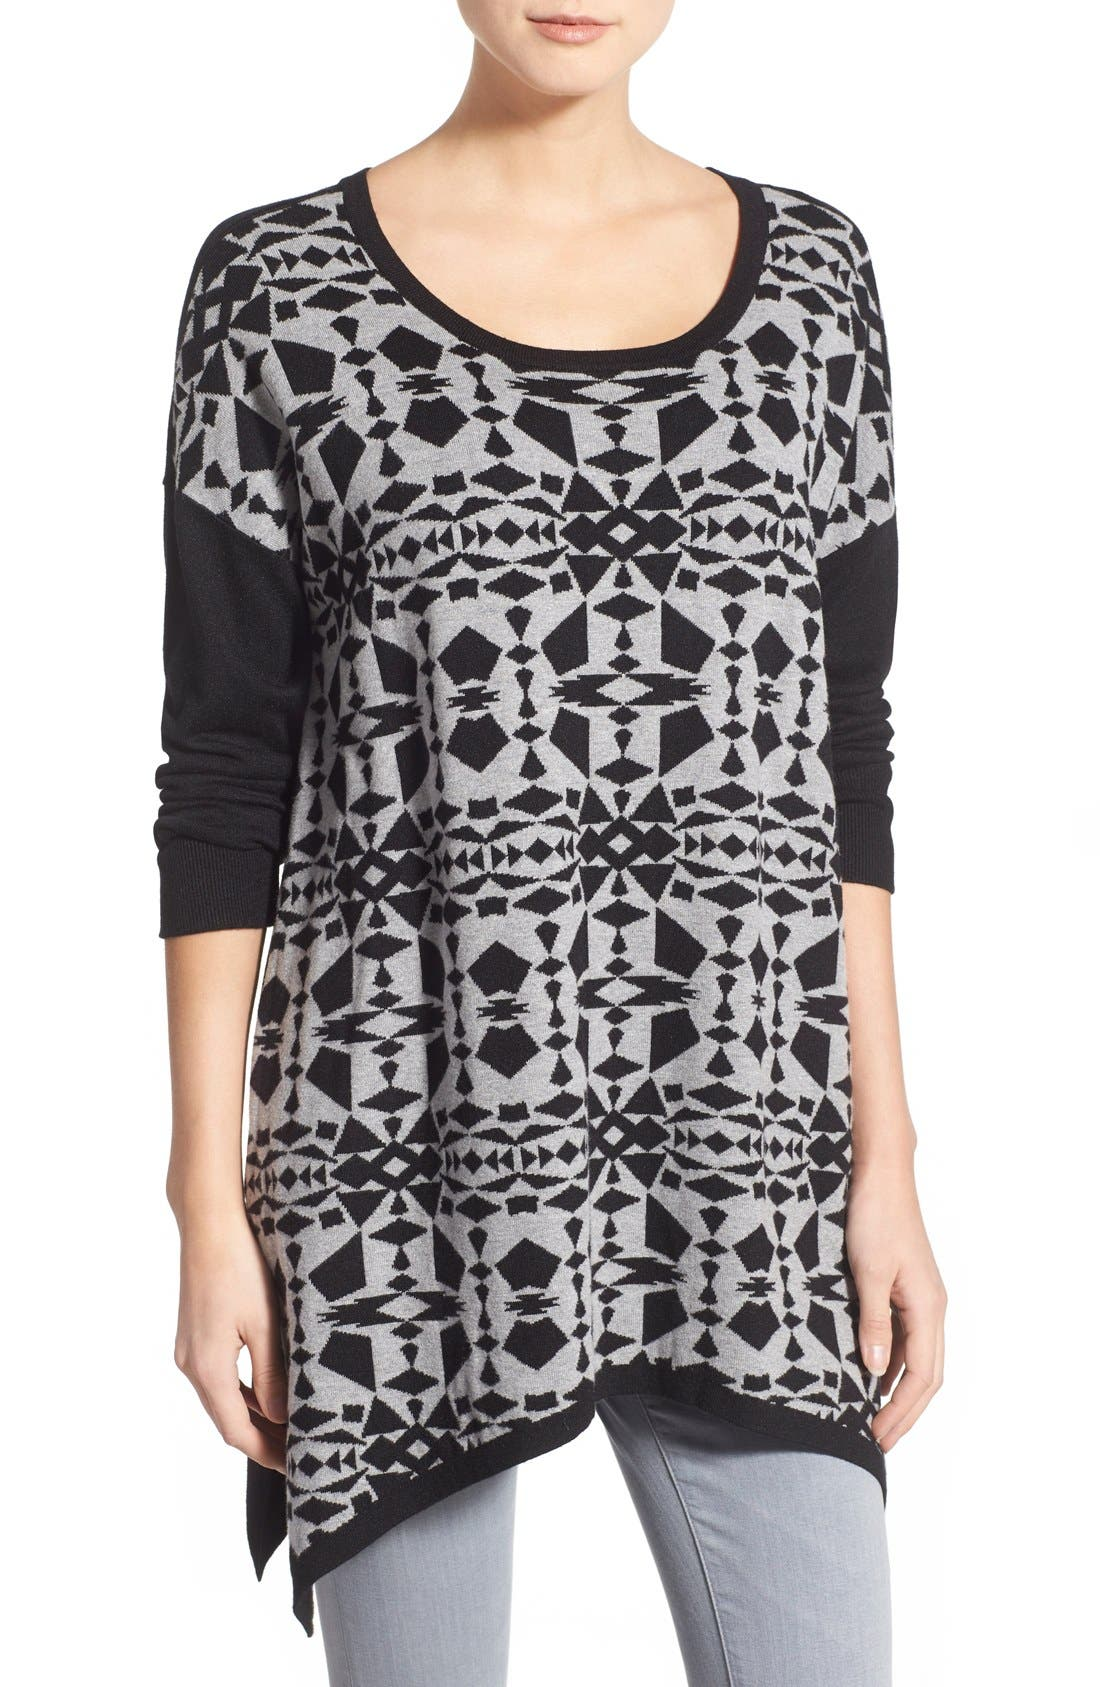 Alternate Image 1 Selected - kensie Print Block Asymmetrical Pullover